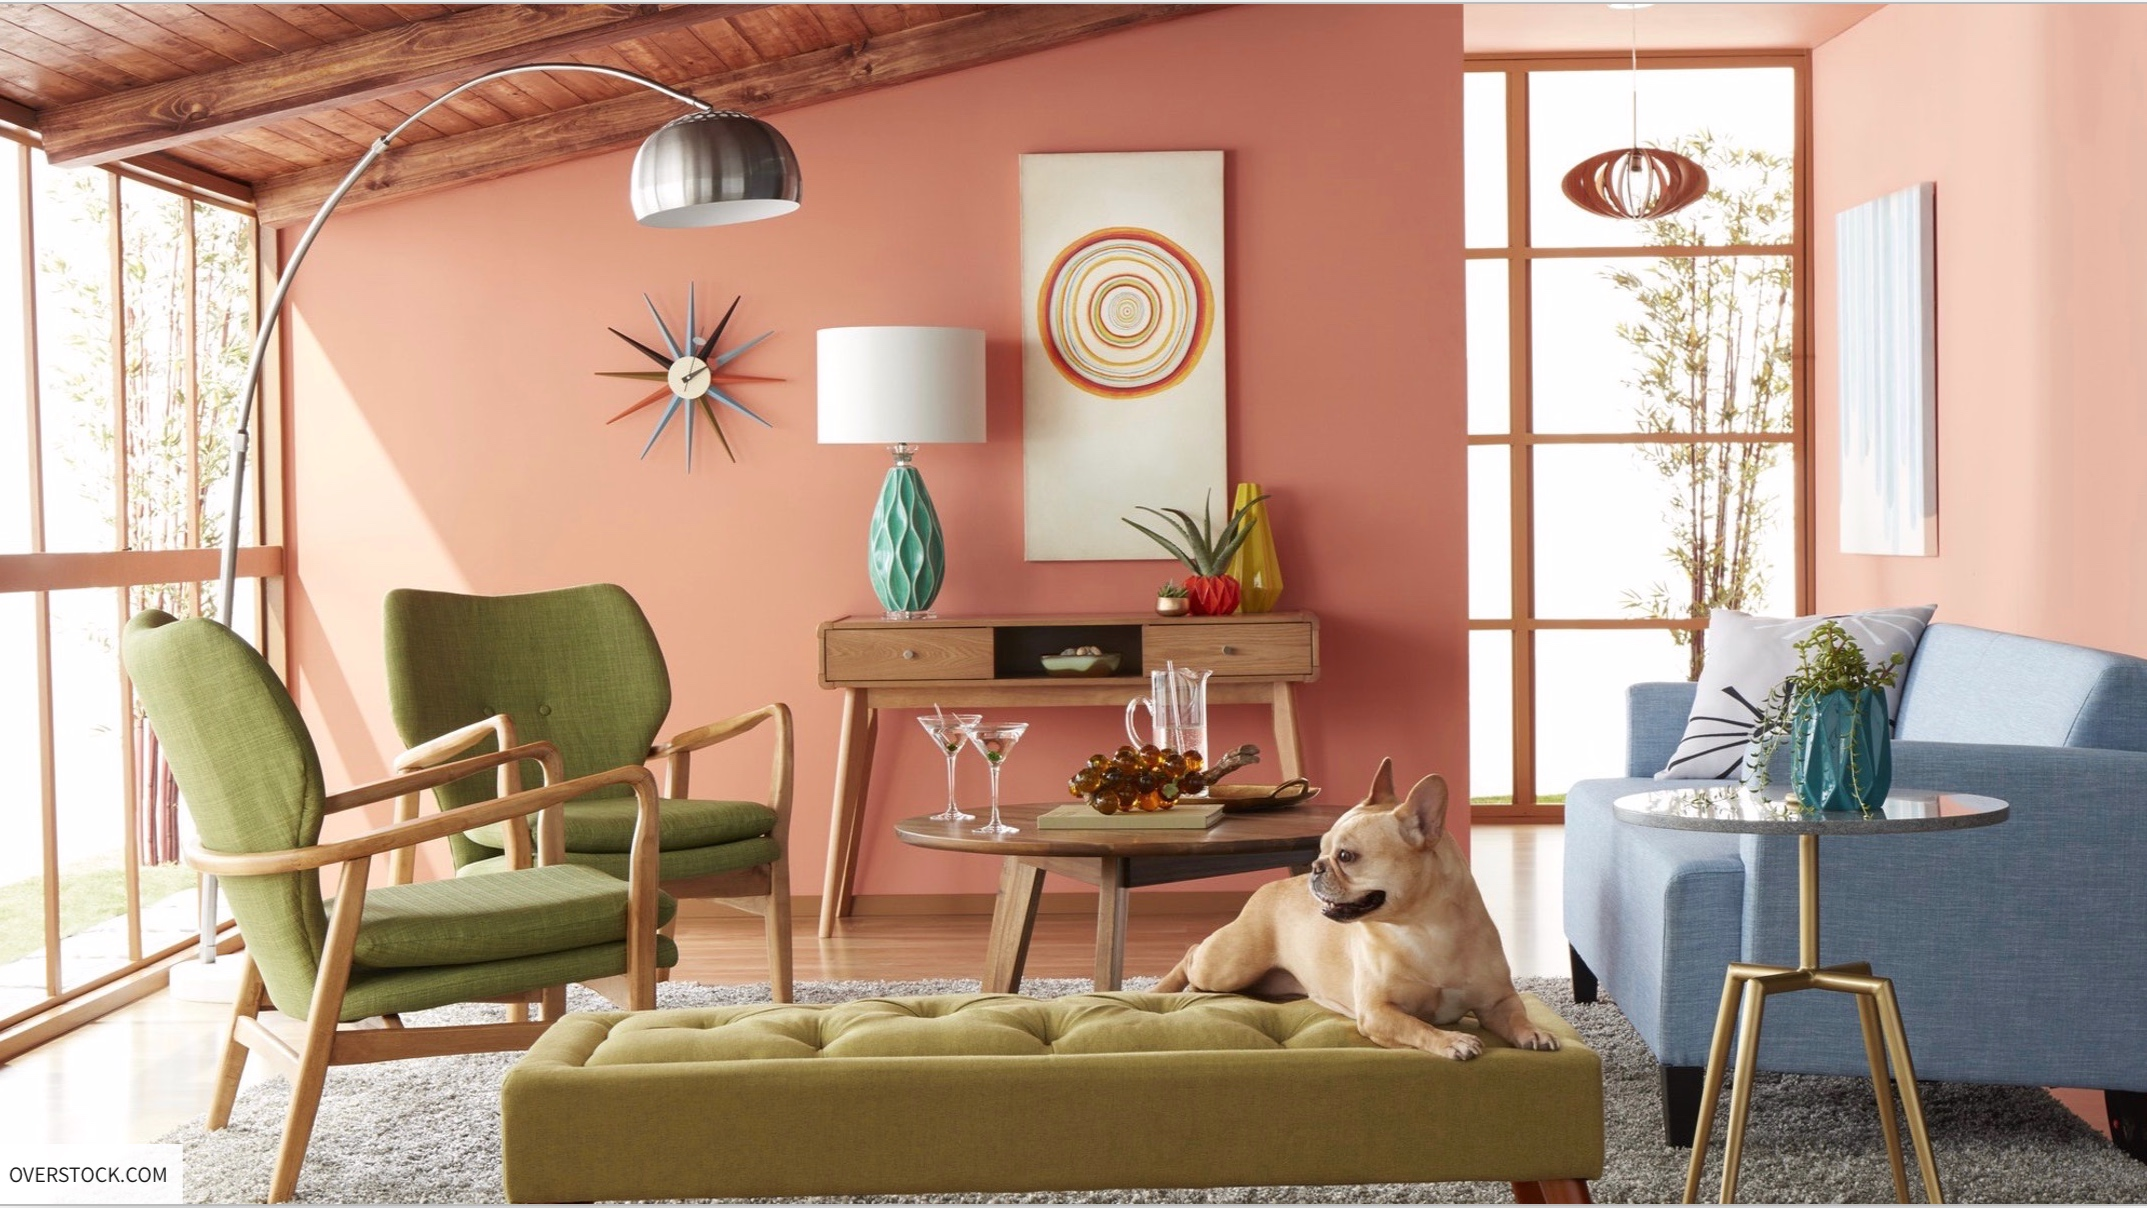 THE ZOE REPORT - Pet-Friendly Decorating Ideas For Animal Lovers